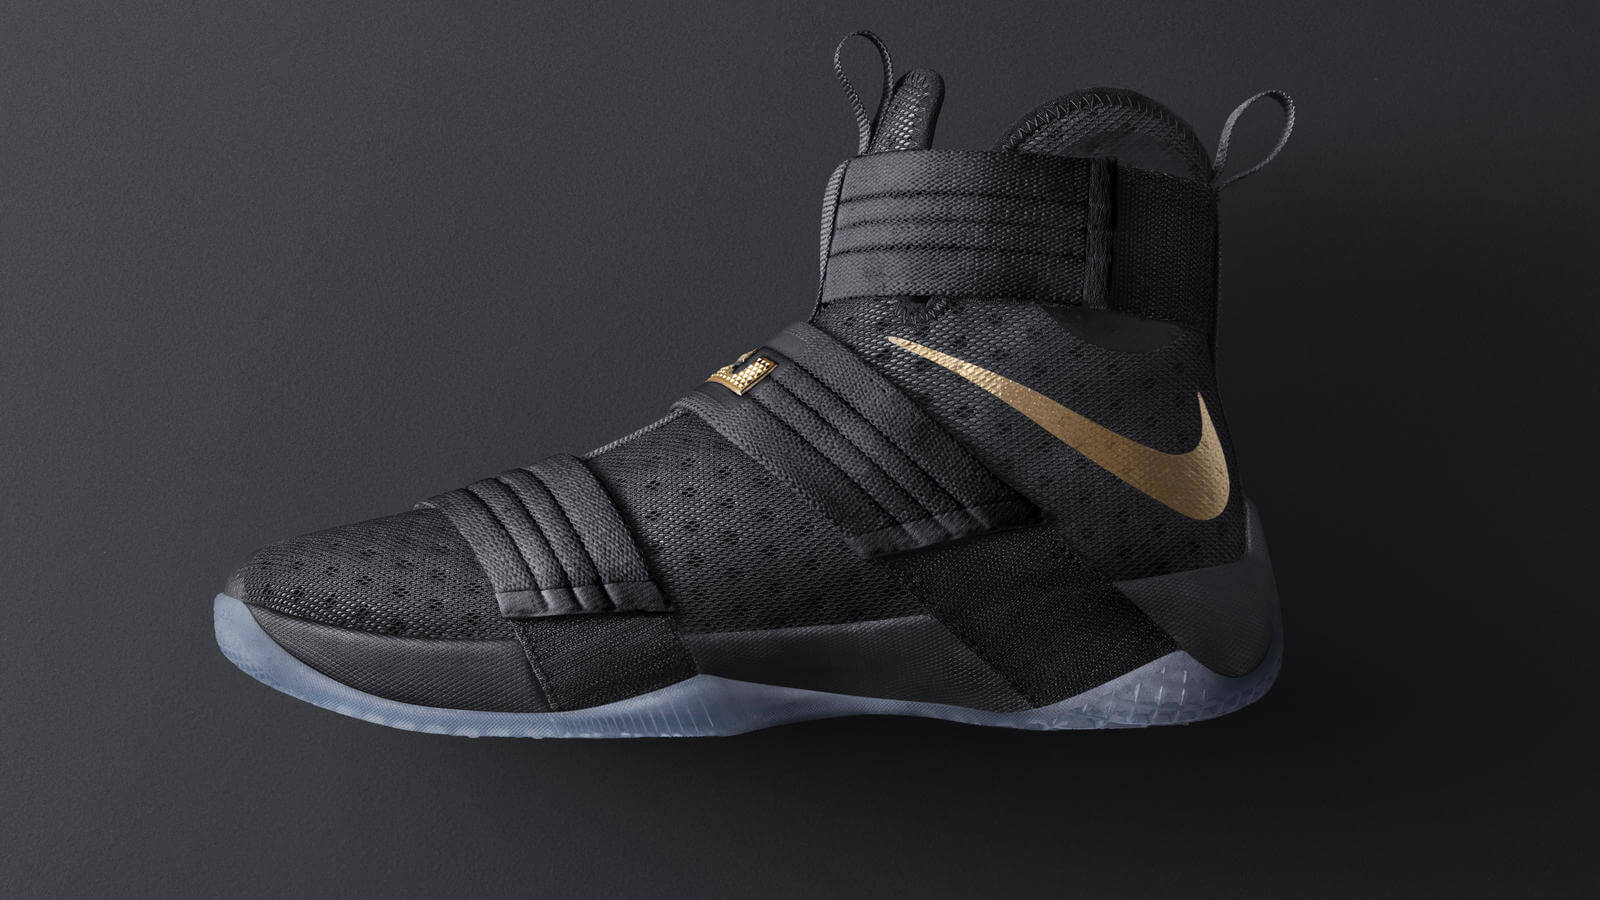 Playoffs_Lebron_Soldier10_Blk_6_hd_1600